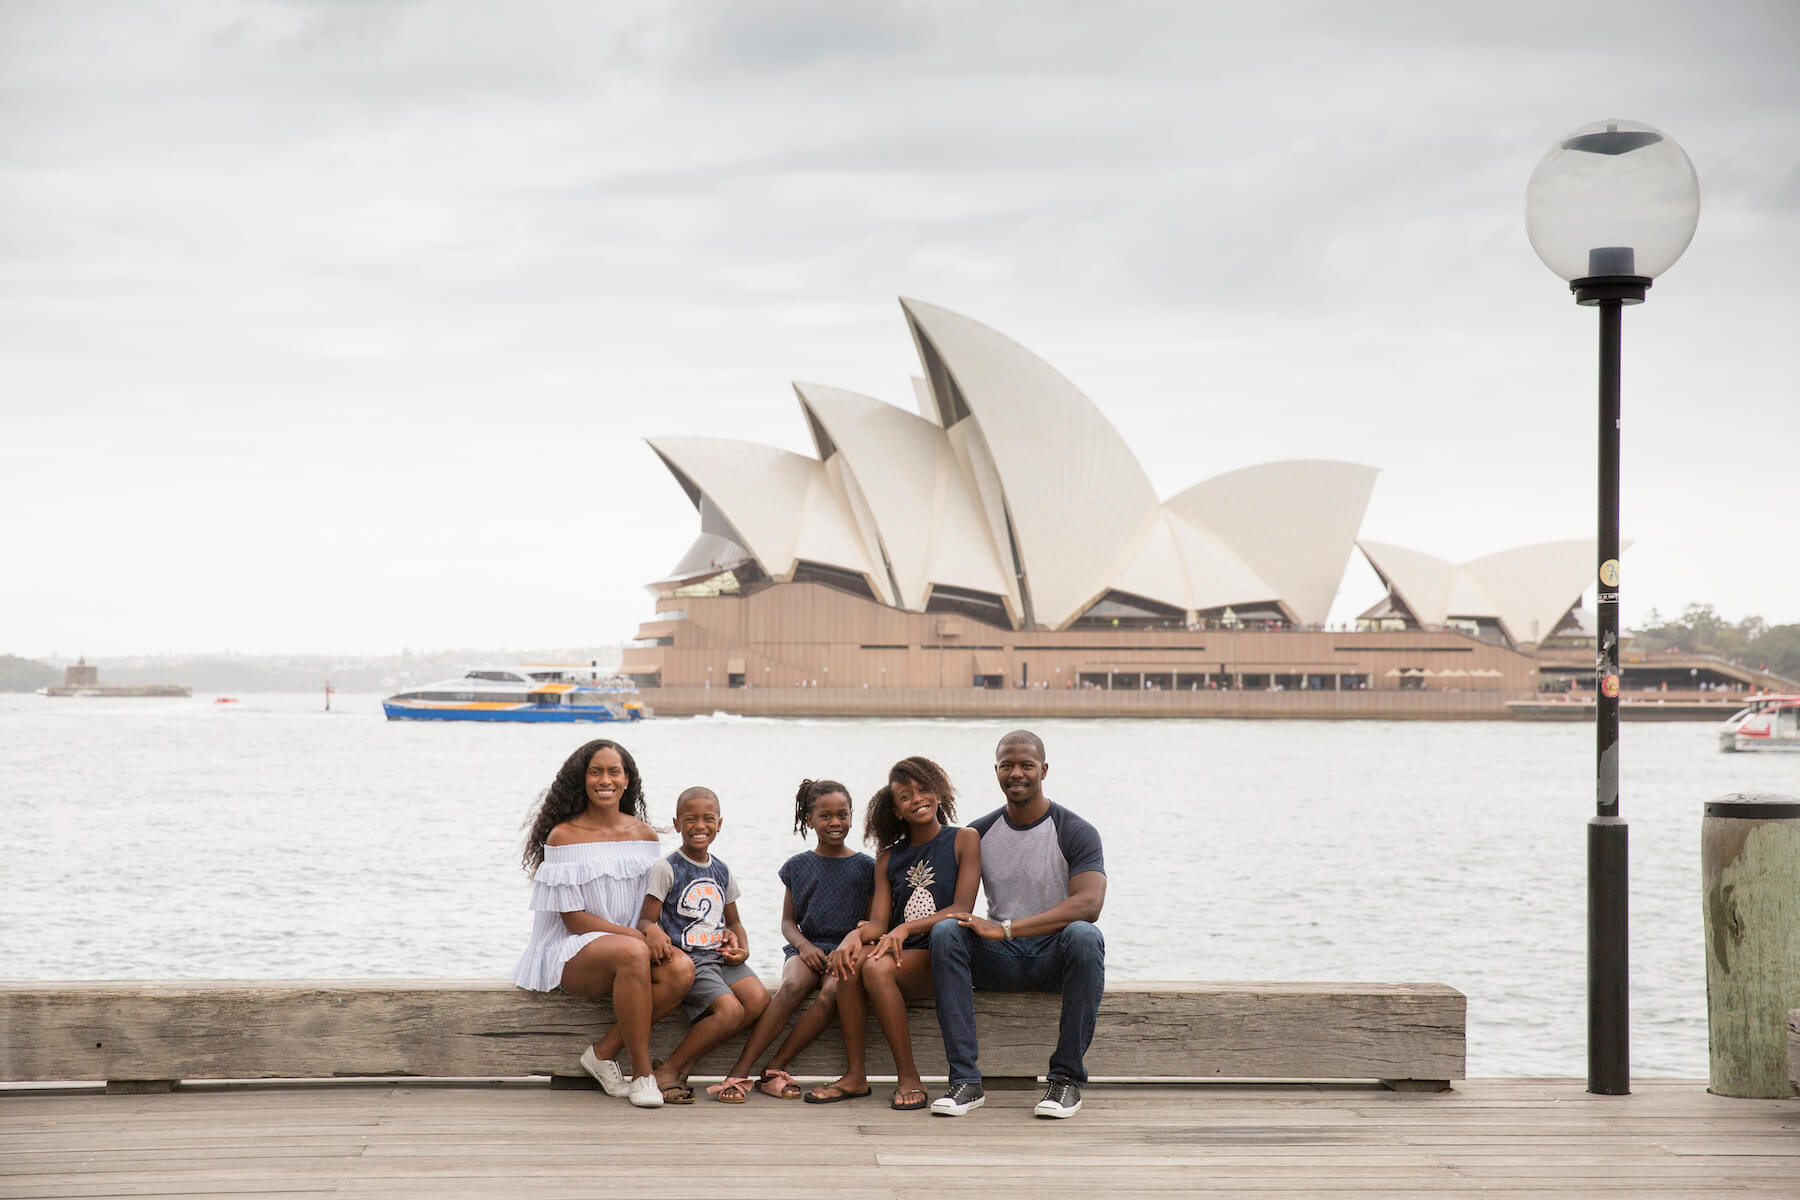 a family with young children sitting down and Sydney Opera house in the background in Sydney, Australia